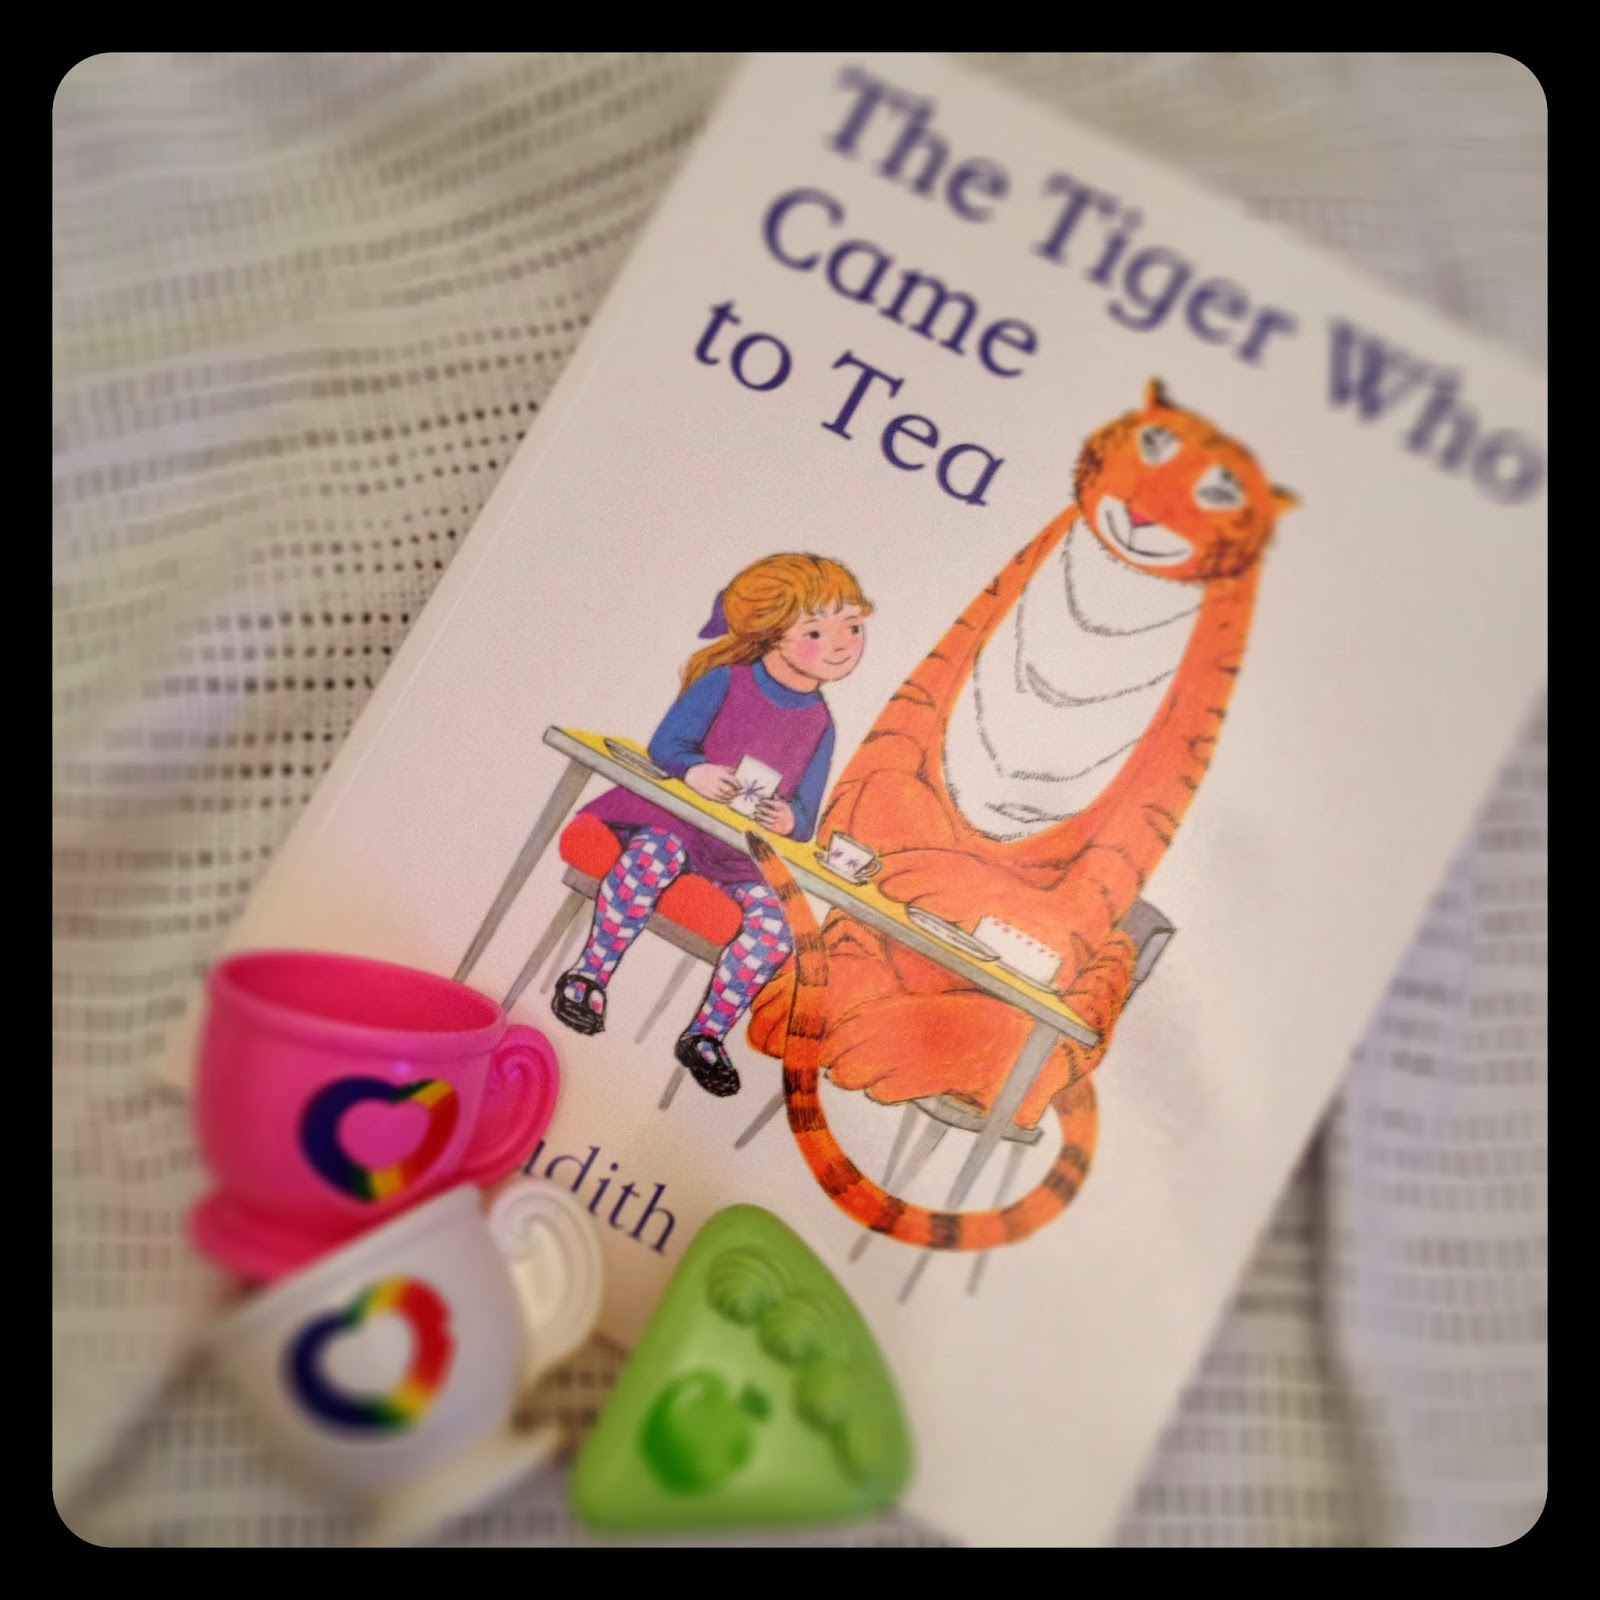 mamasVIB | V. I. BOOKCLUB: Build a classic library for kids (The Tiger Who Came to Tea), baby books, classic baby books, classic library, V. I. BOOKCLUB, sunday night book club, classic library,